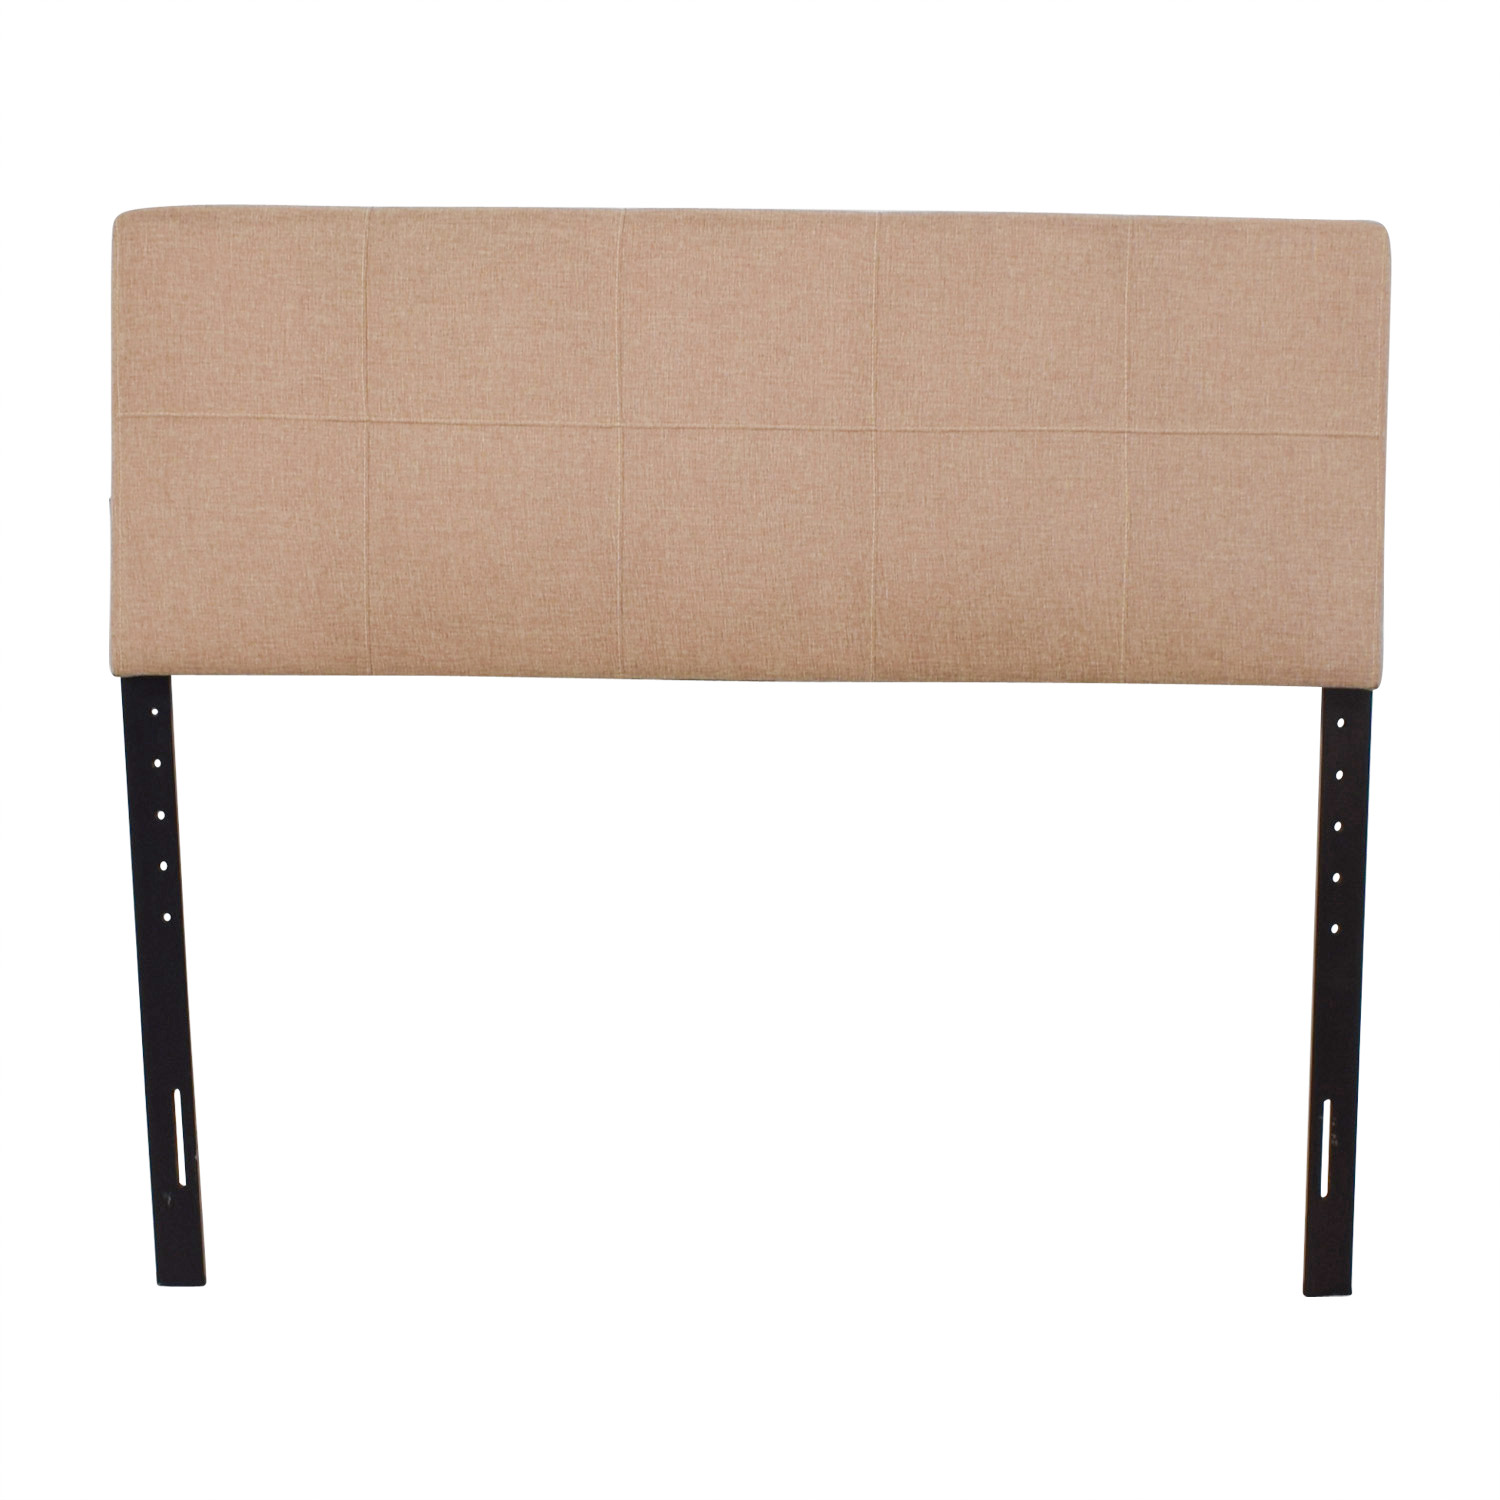 Queen Sized Upholstered Headboard Beige